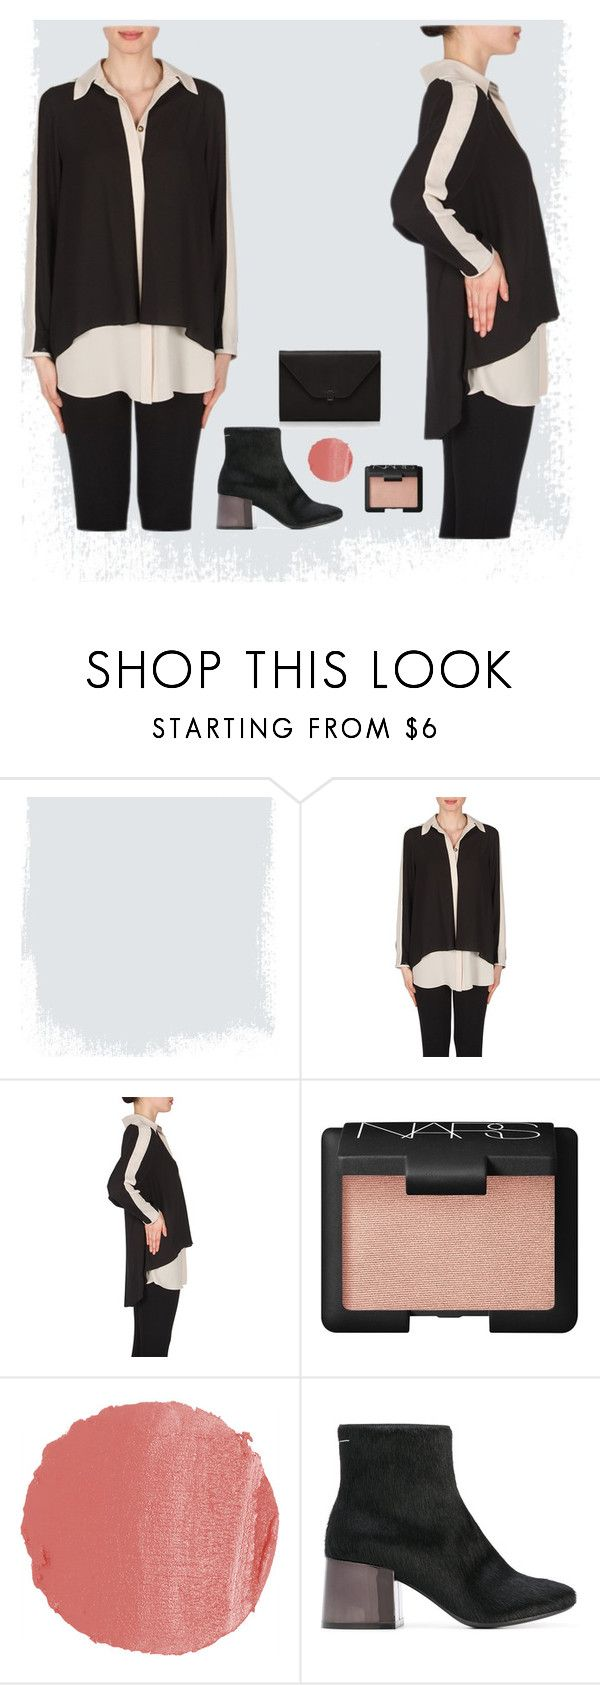 """Dinner Date"" by wardrobefashionperth on Polyvore featuring NARS Cosmetics, MM6 Maison Margiela and Valextra"